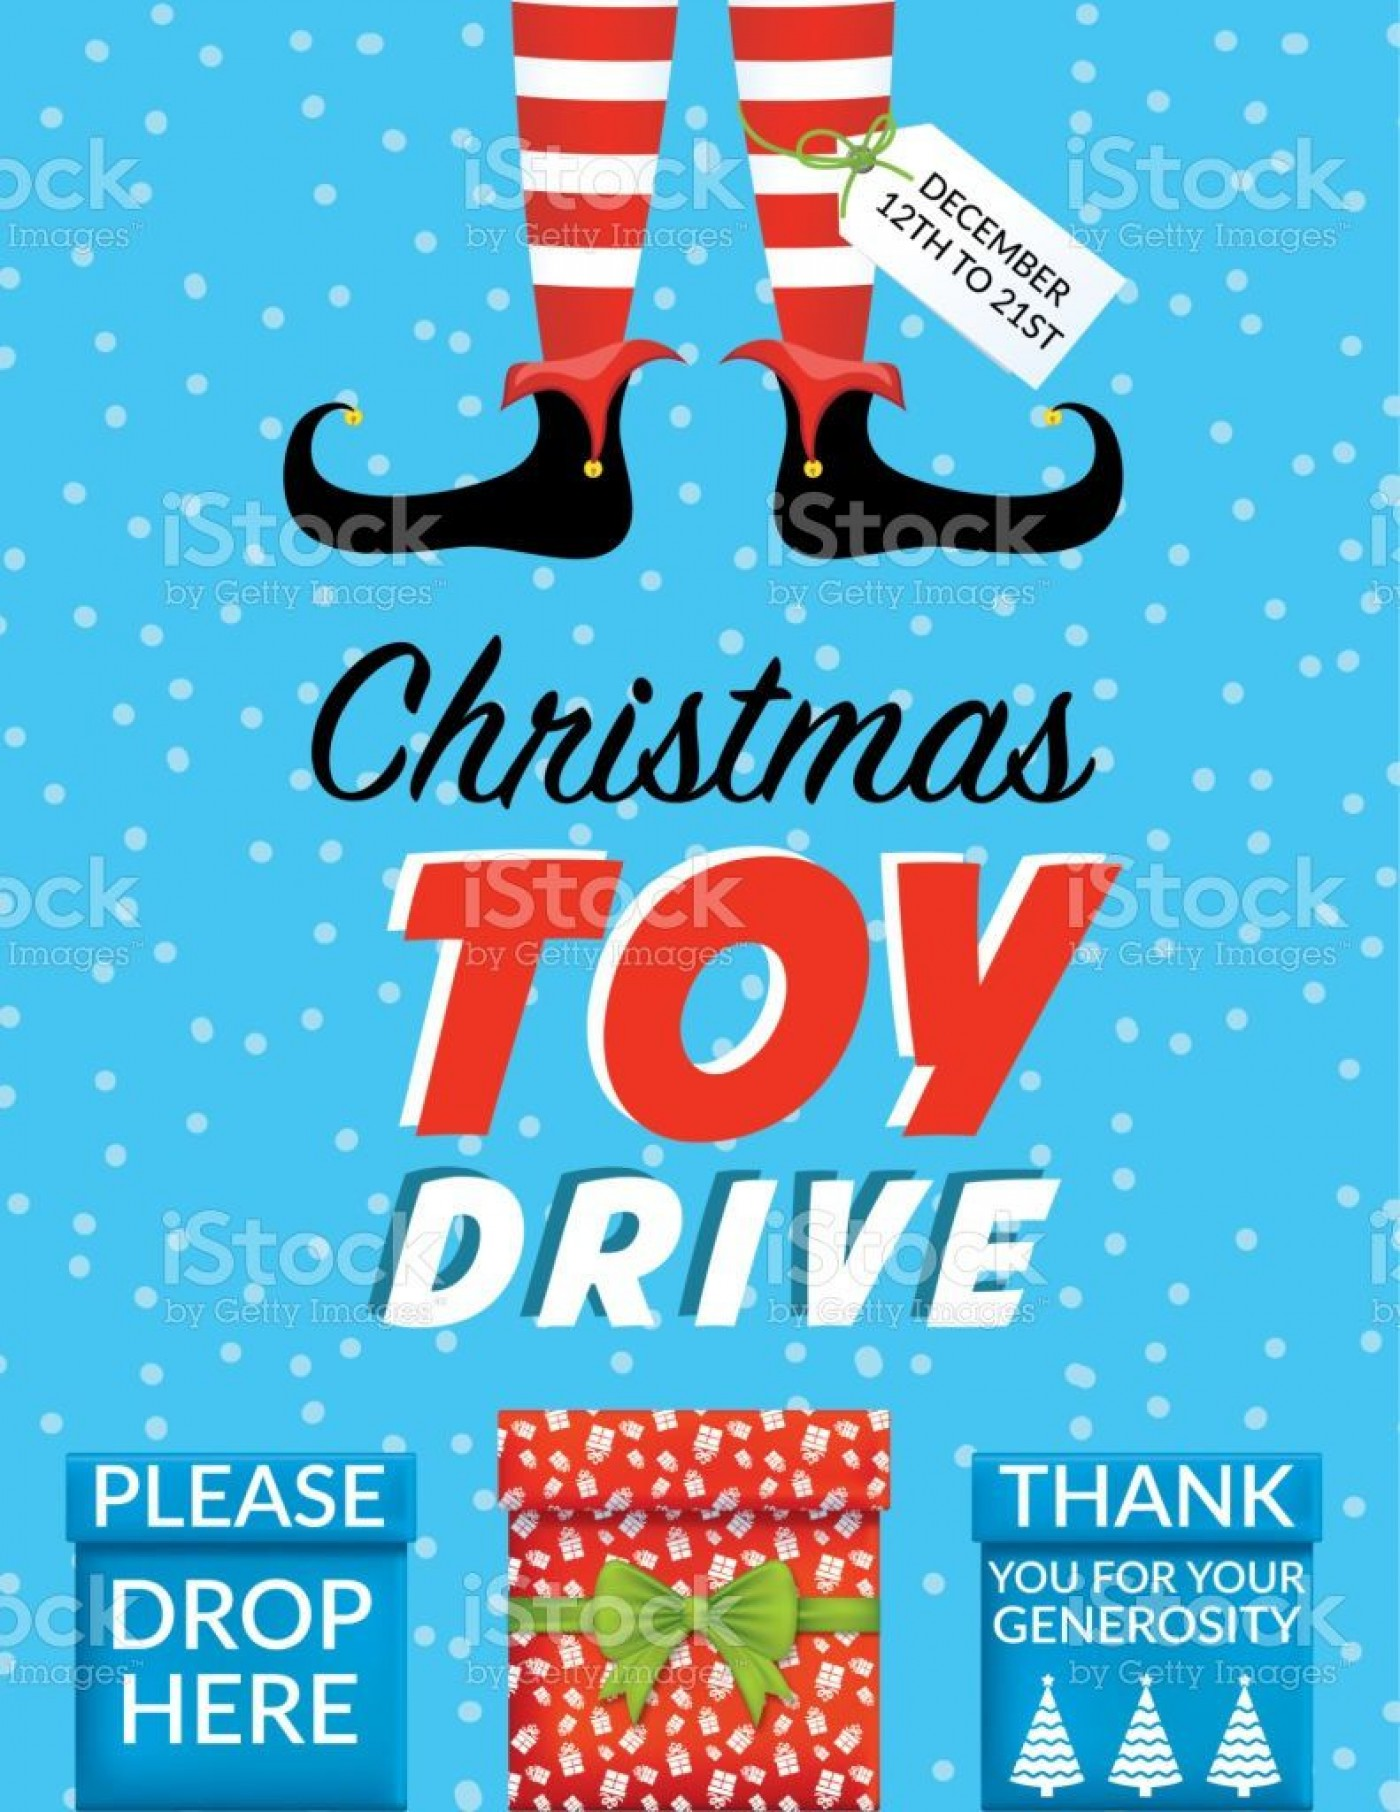 008 Imposing Toy Drive Flyer Template Free Inspiration  Download Christma1400